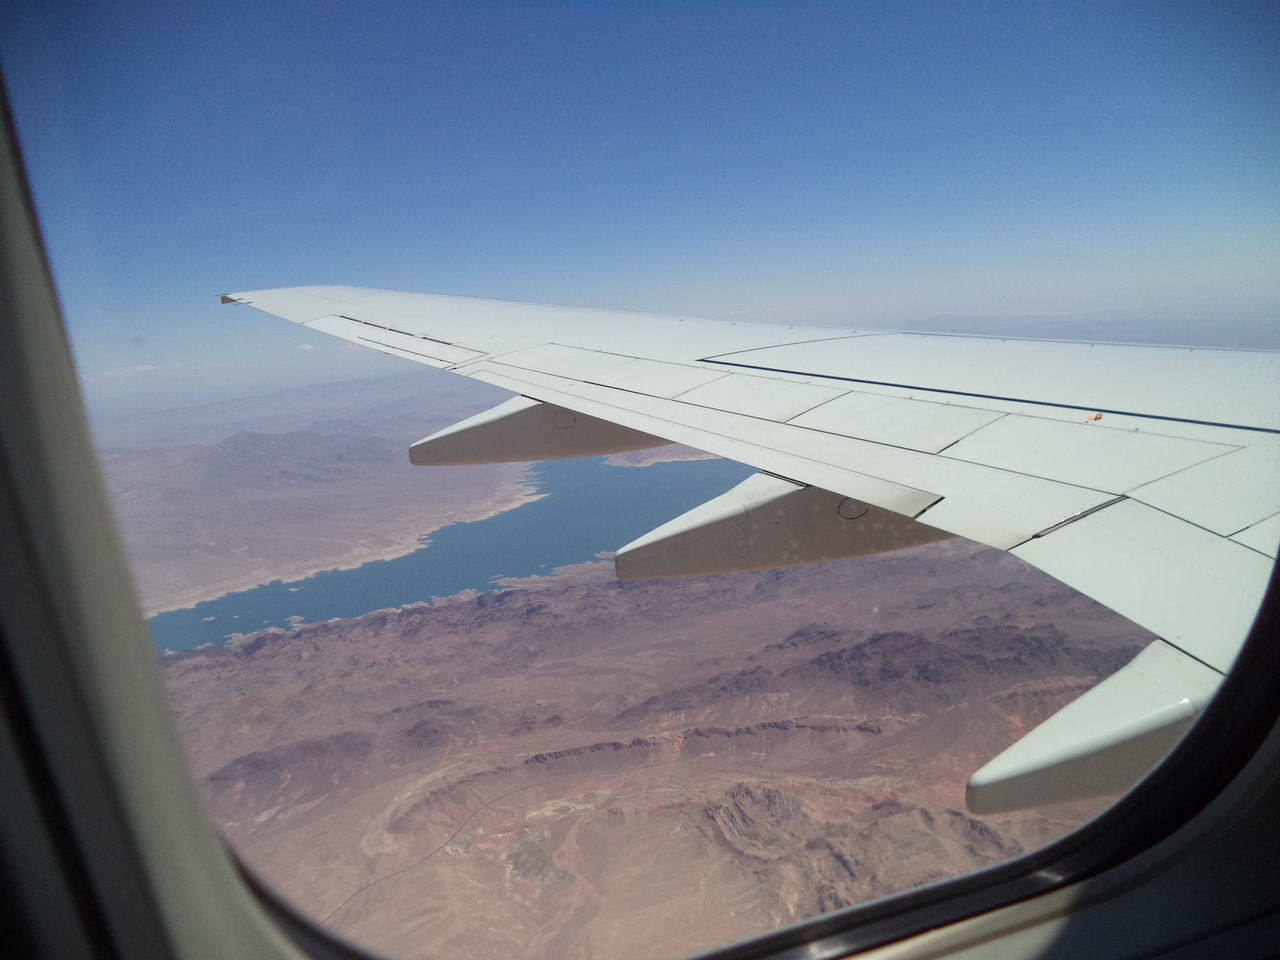 airplane, aerial view, transportation, journey, mode of transport, airplane wing, air vehicle, travel, landscape, nature, window, day, beauty in nature, scenics, aircraft wing, no people, tranquil scene, sky, flying, outdoors, mountain, mid-air, vehicle part